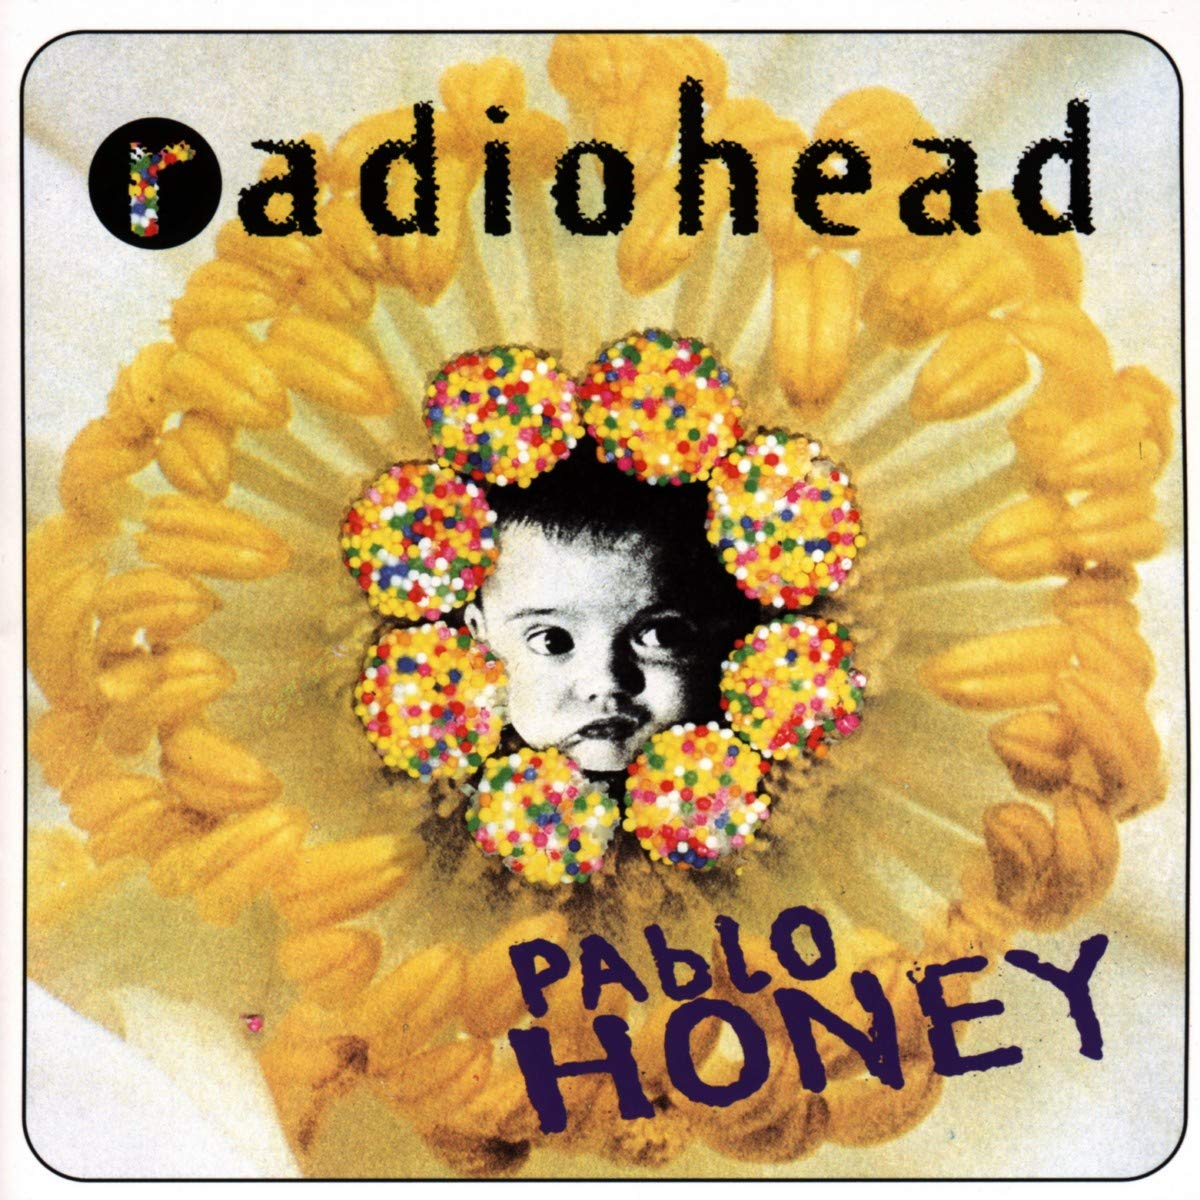 Radiohead - Pablo Honey - Gears For Ears